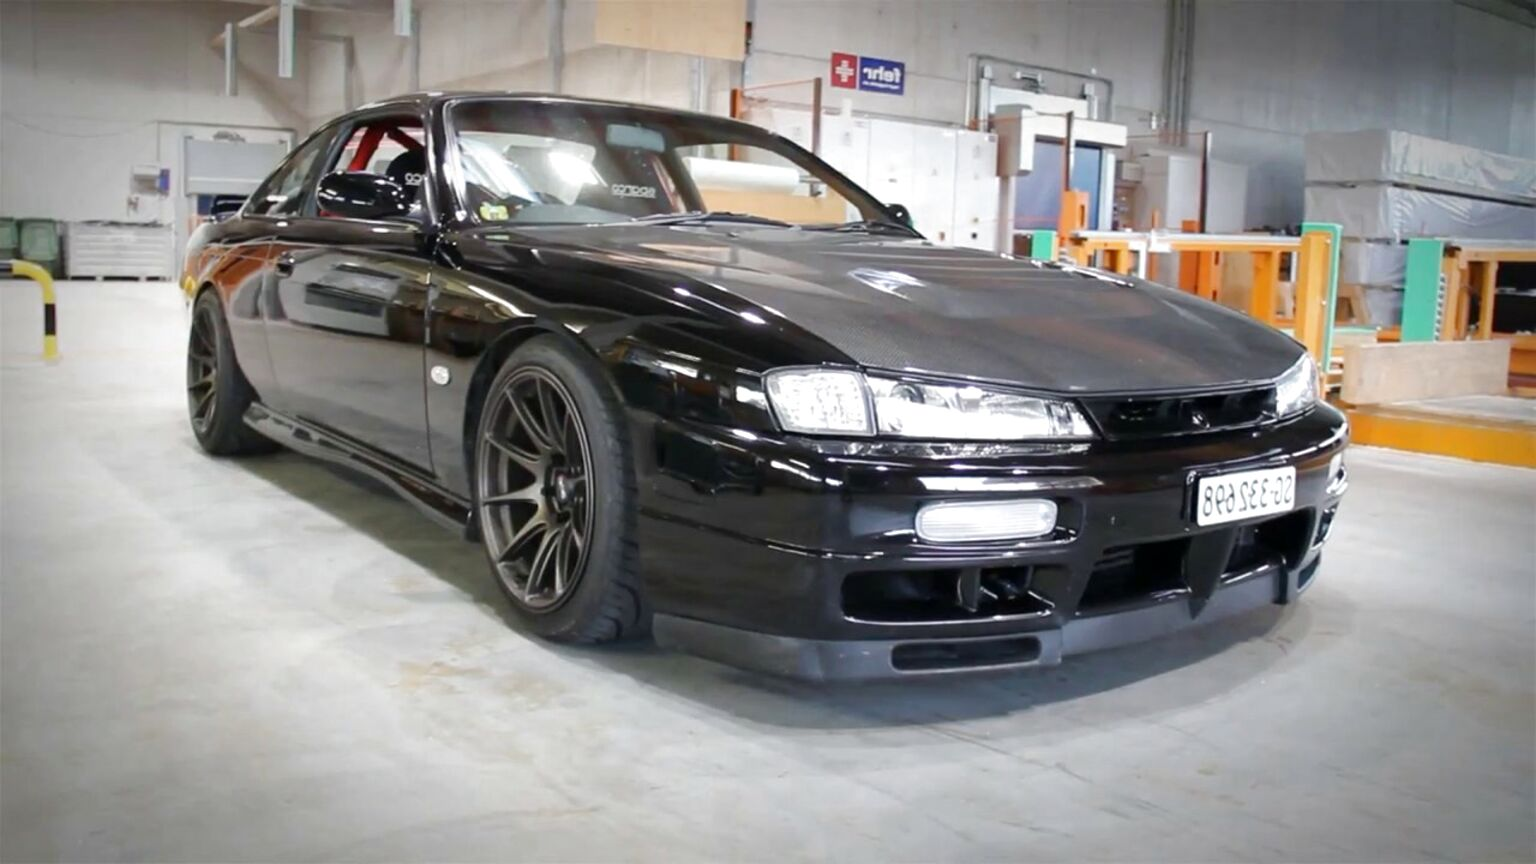 s14a for sale